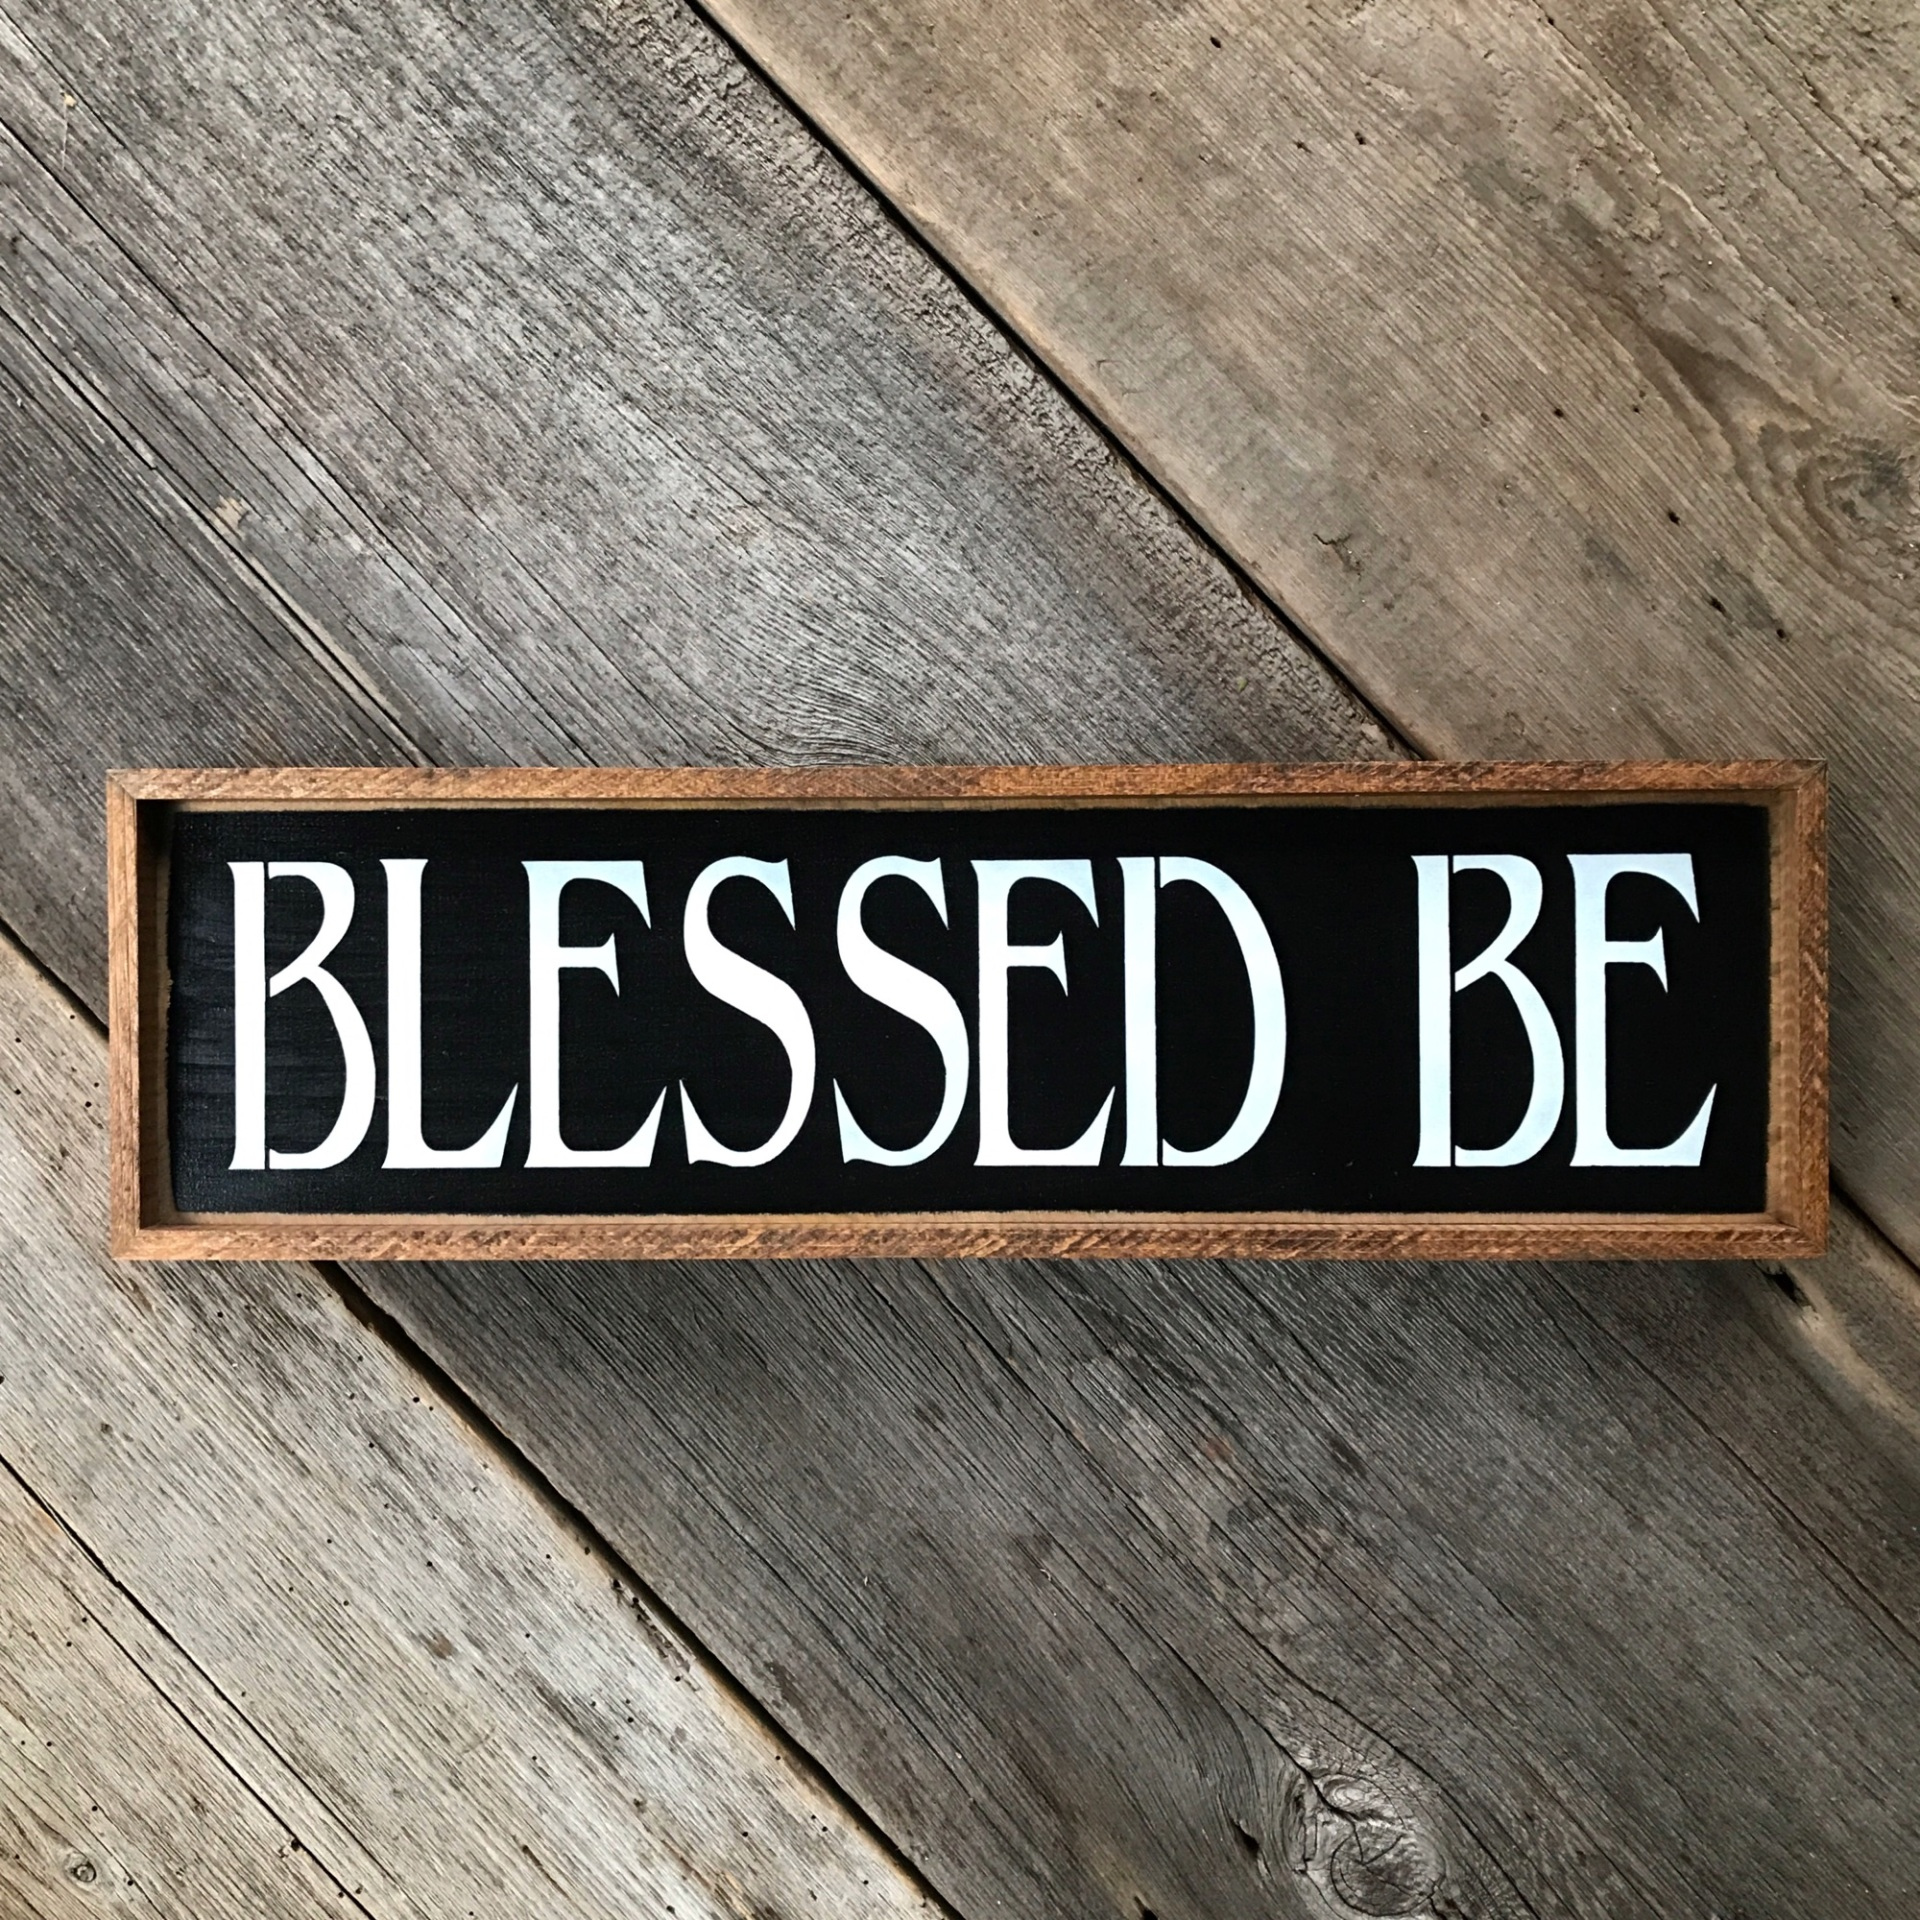 Blessed Be, Wiccan Phrases, Wood Sign, Front Door, Entryway, Porch Decor